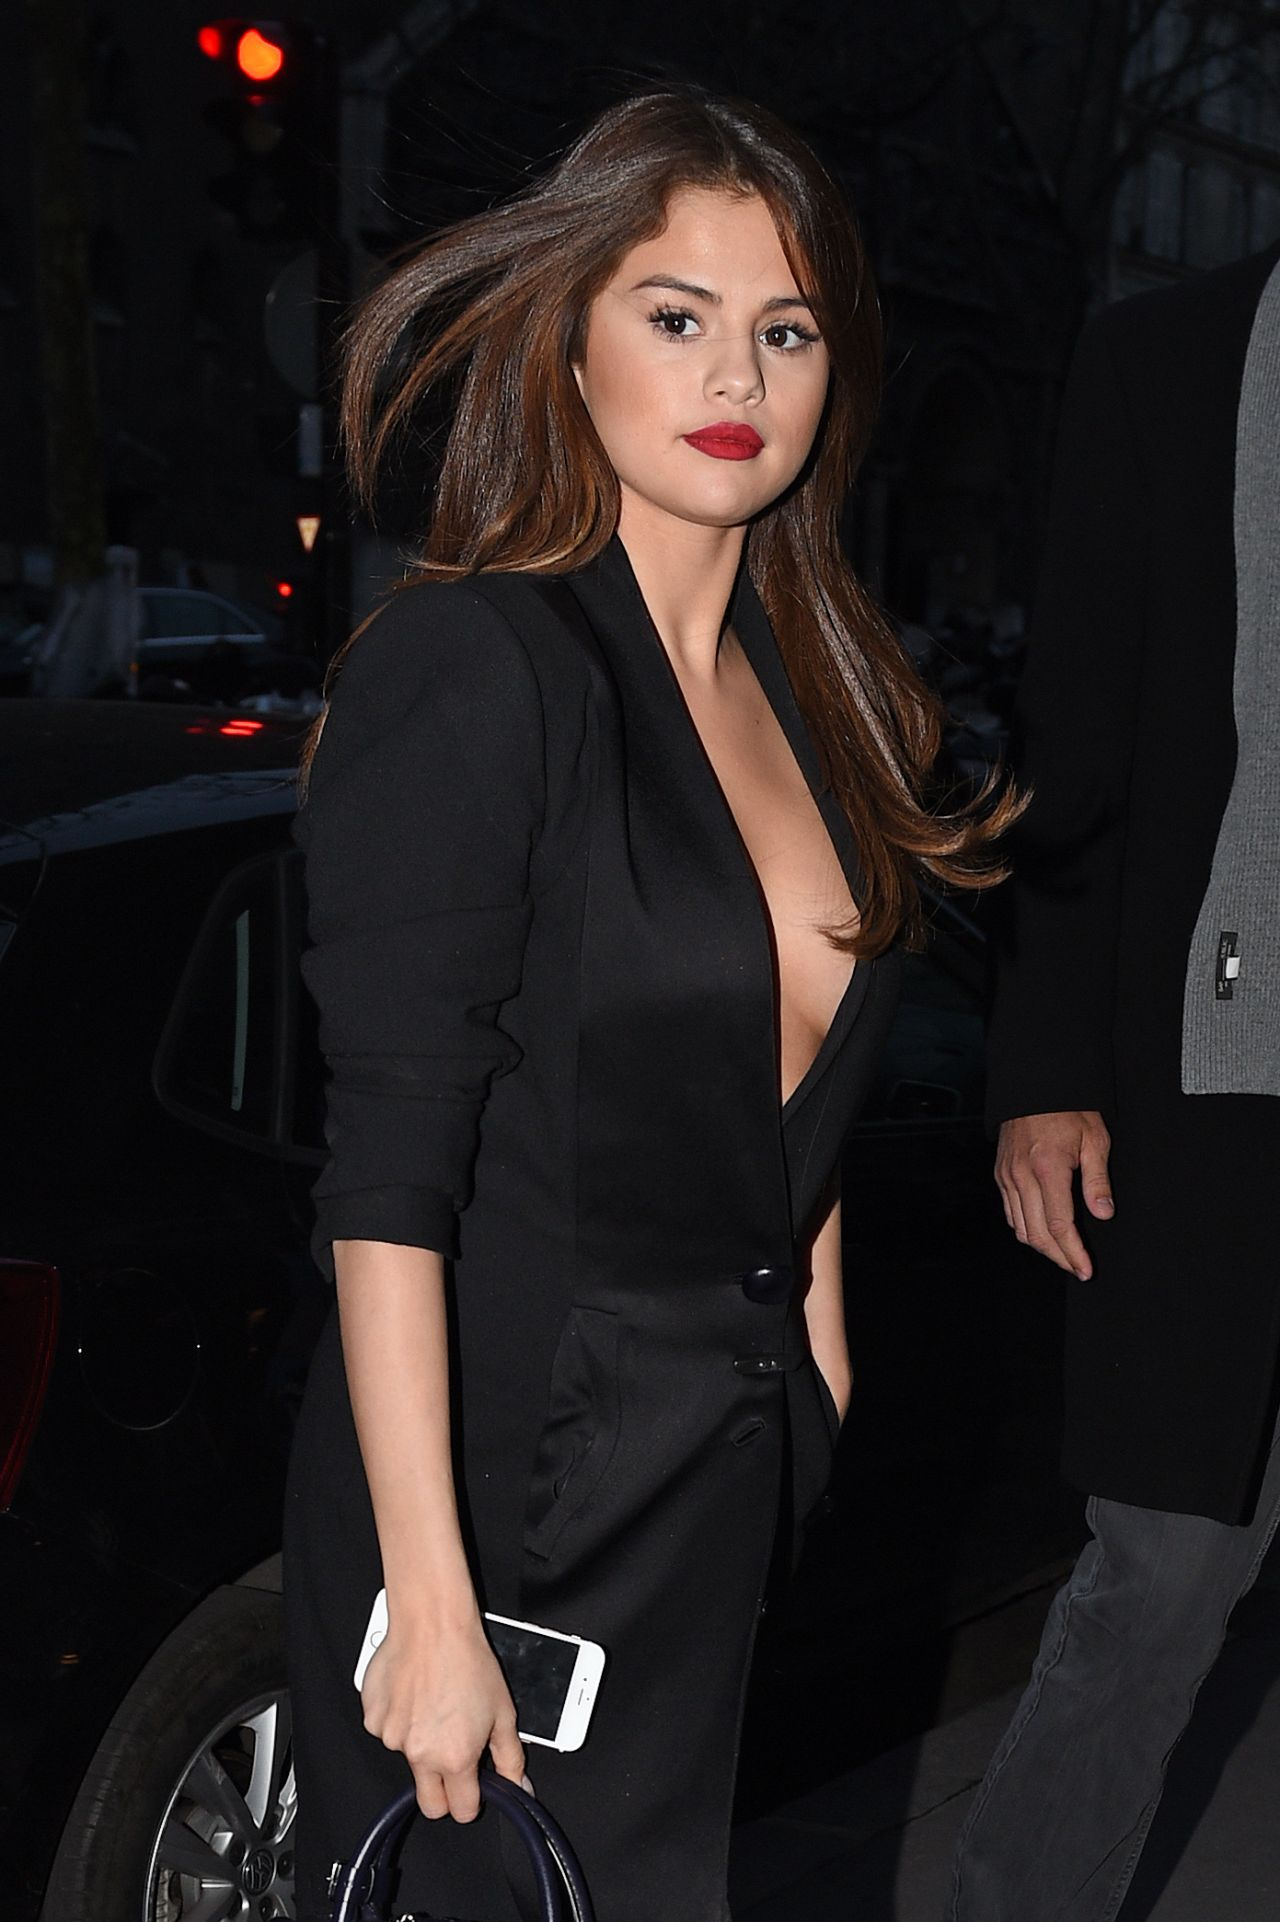 Selena Gomez Night Out Style - Leaving Hotel in Paris, 3/8